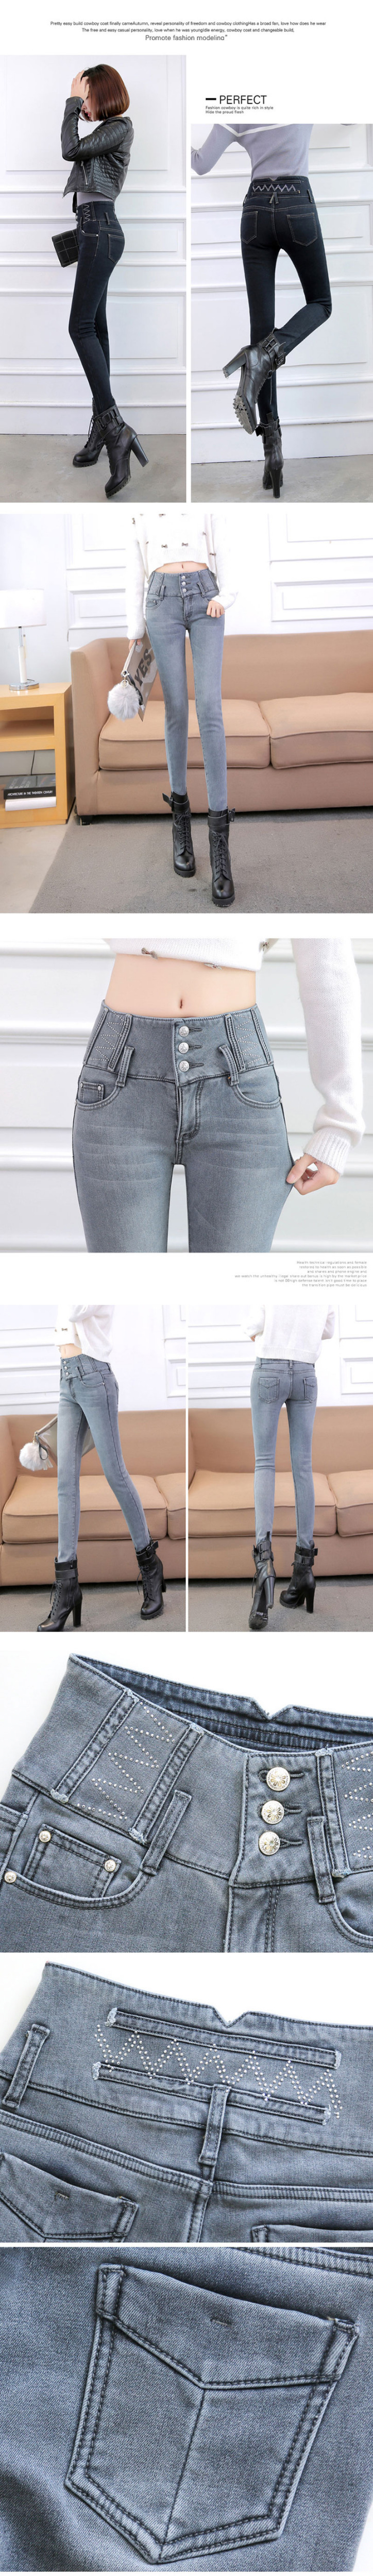 The-new-show-female-foot-tall-waist-jeans-height-pants-with-velvet-elastic-cultivate-one's-morality_02